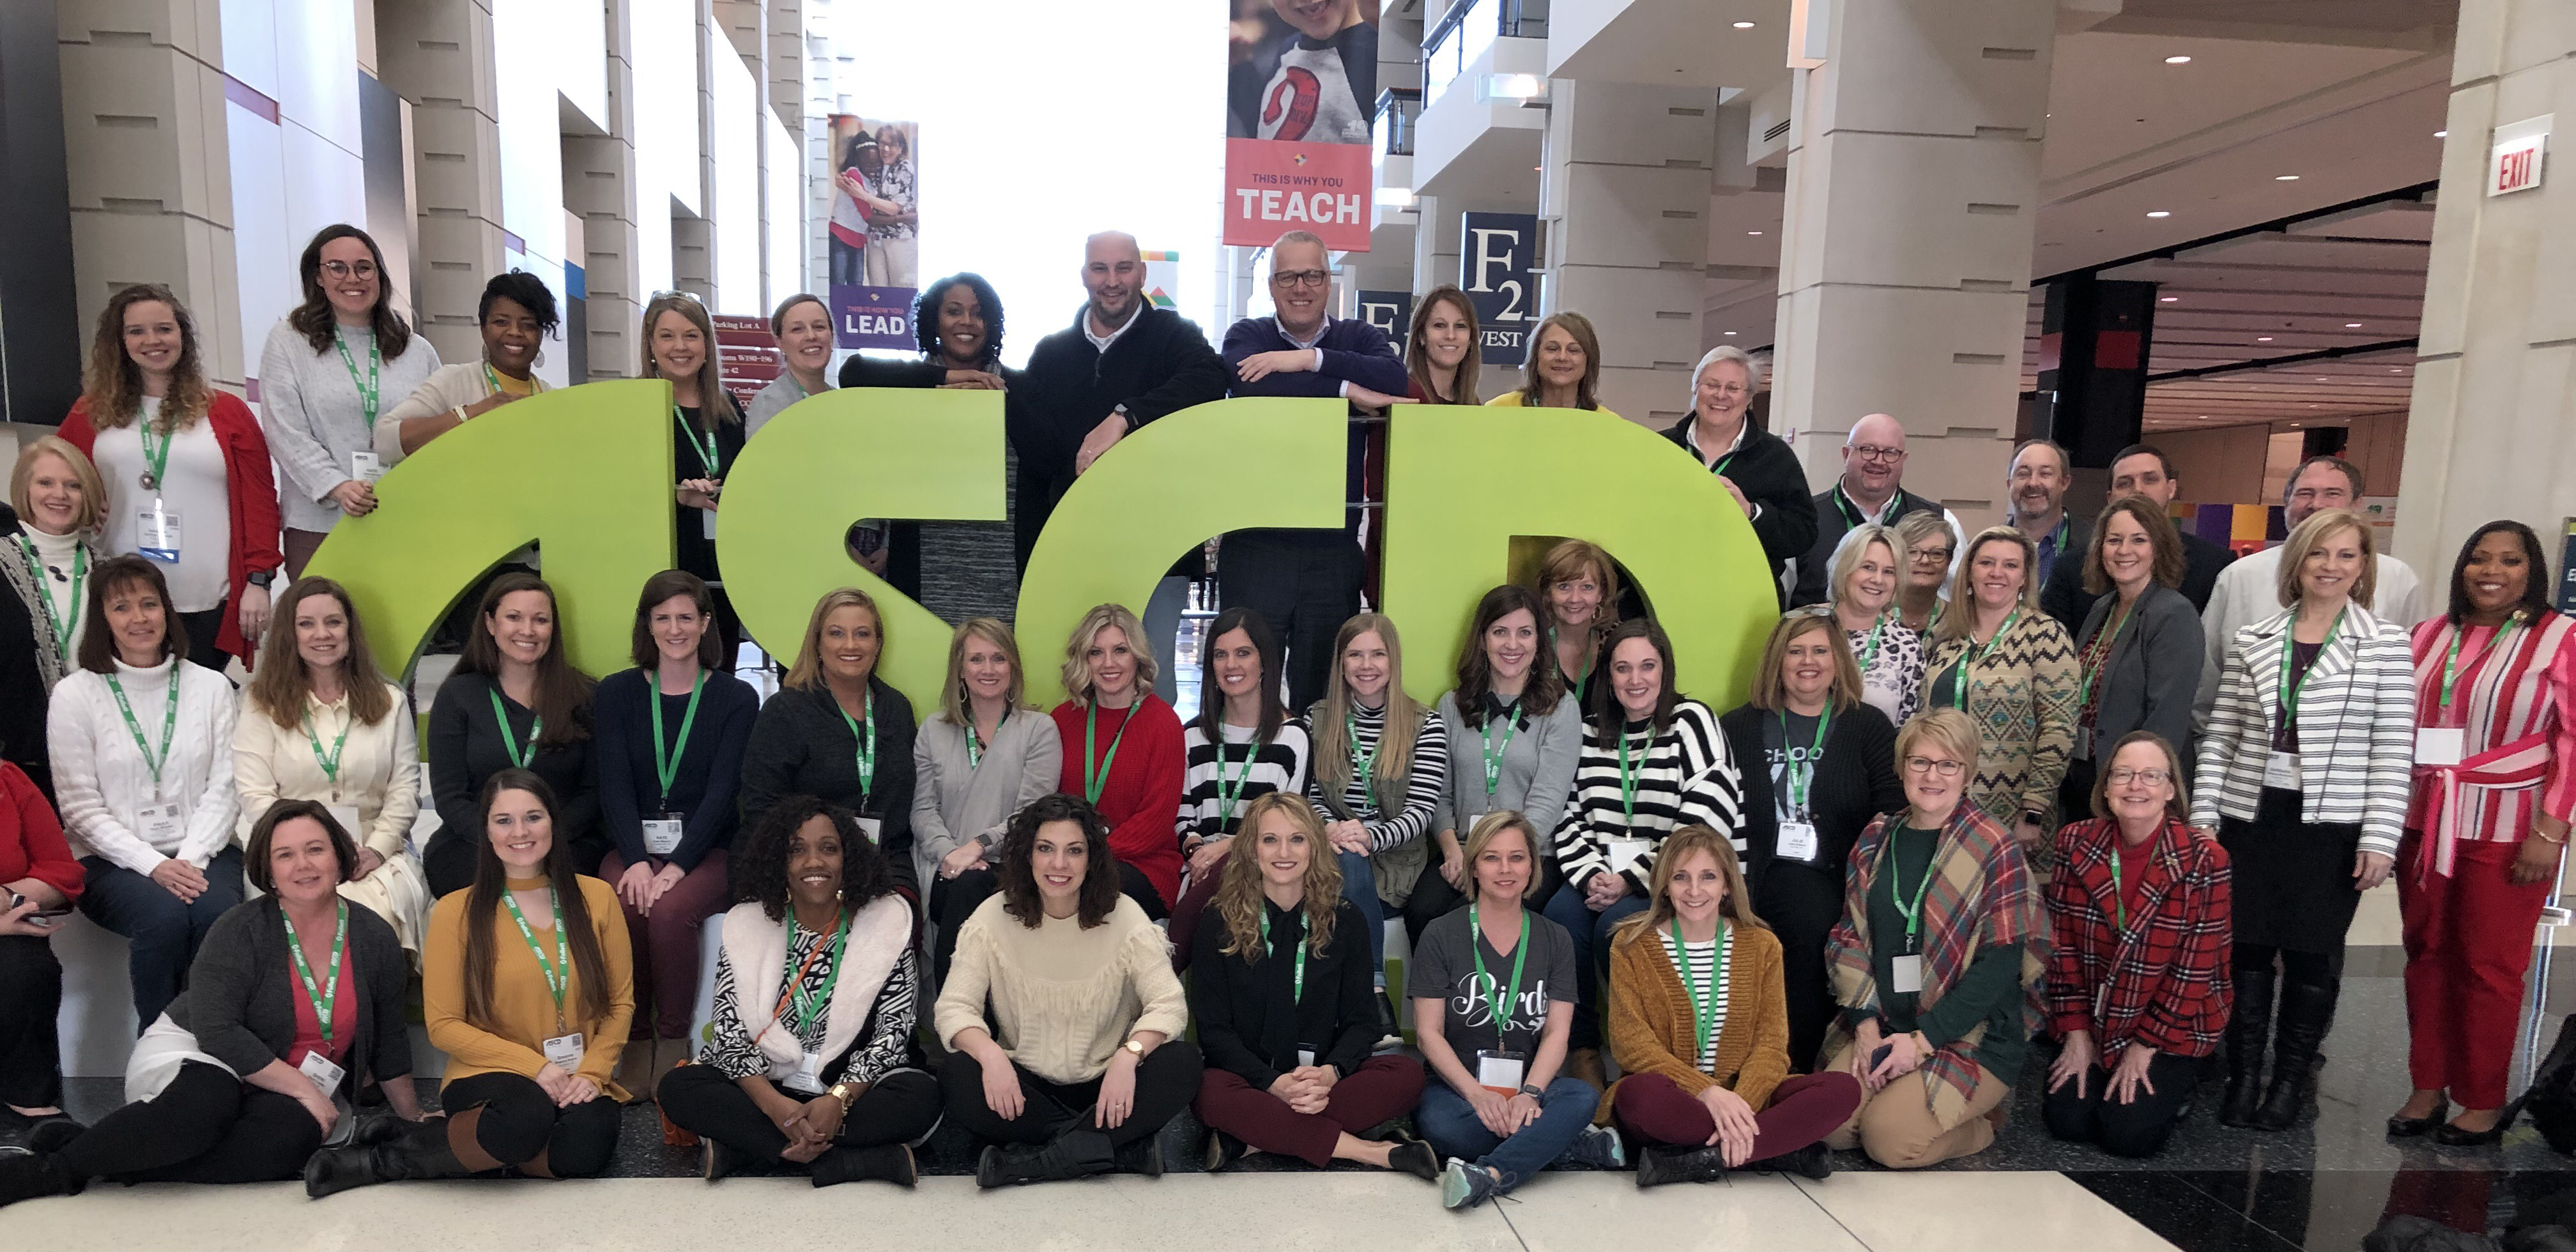 Arkansas ASCD members stand around large versions of the ASCD letters at a conference.